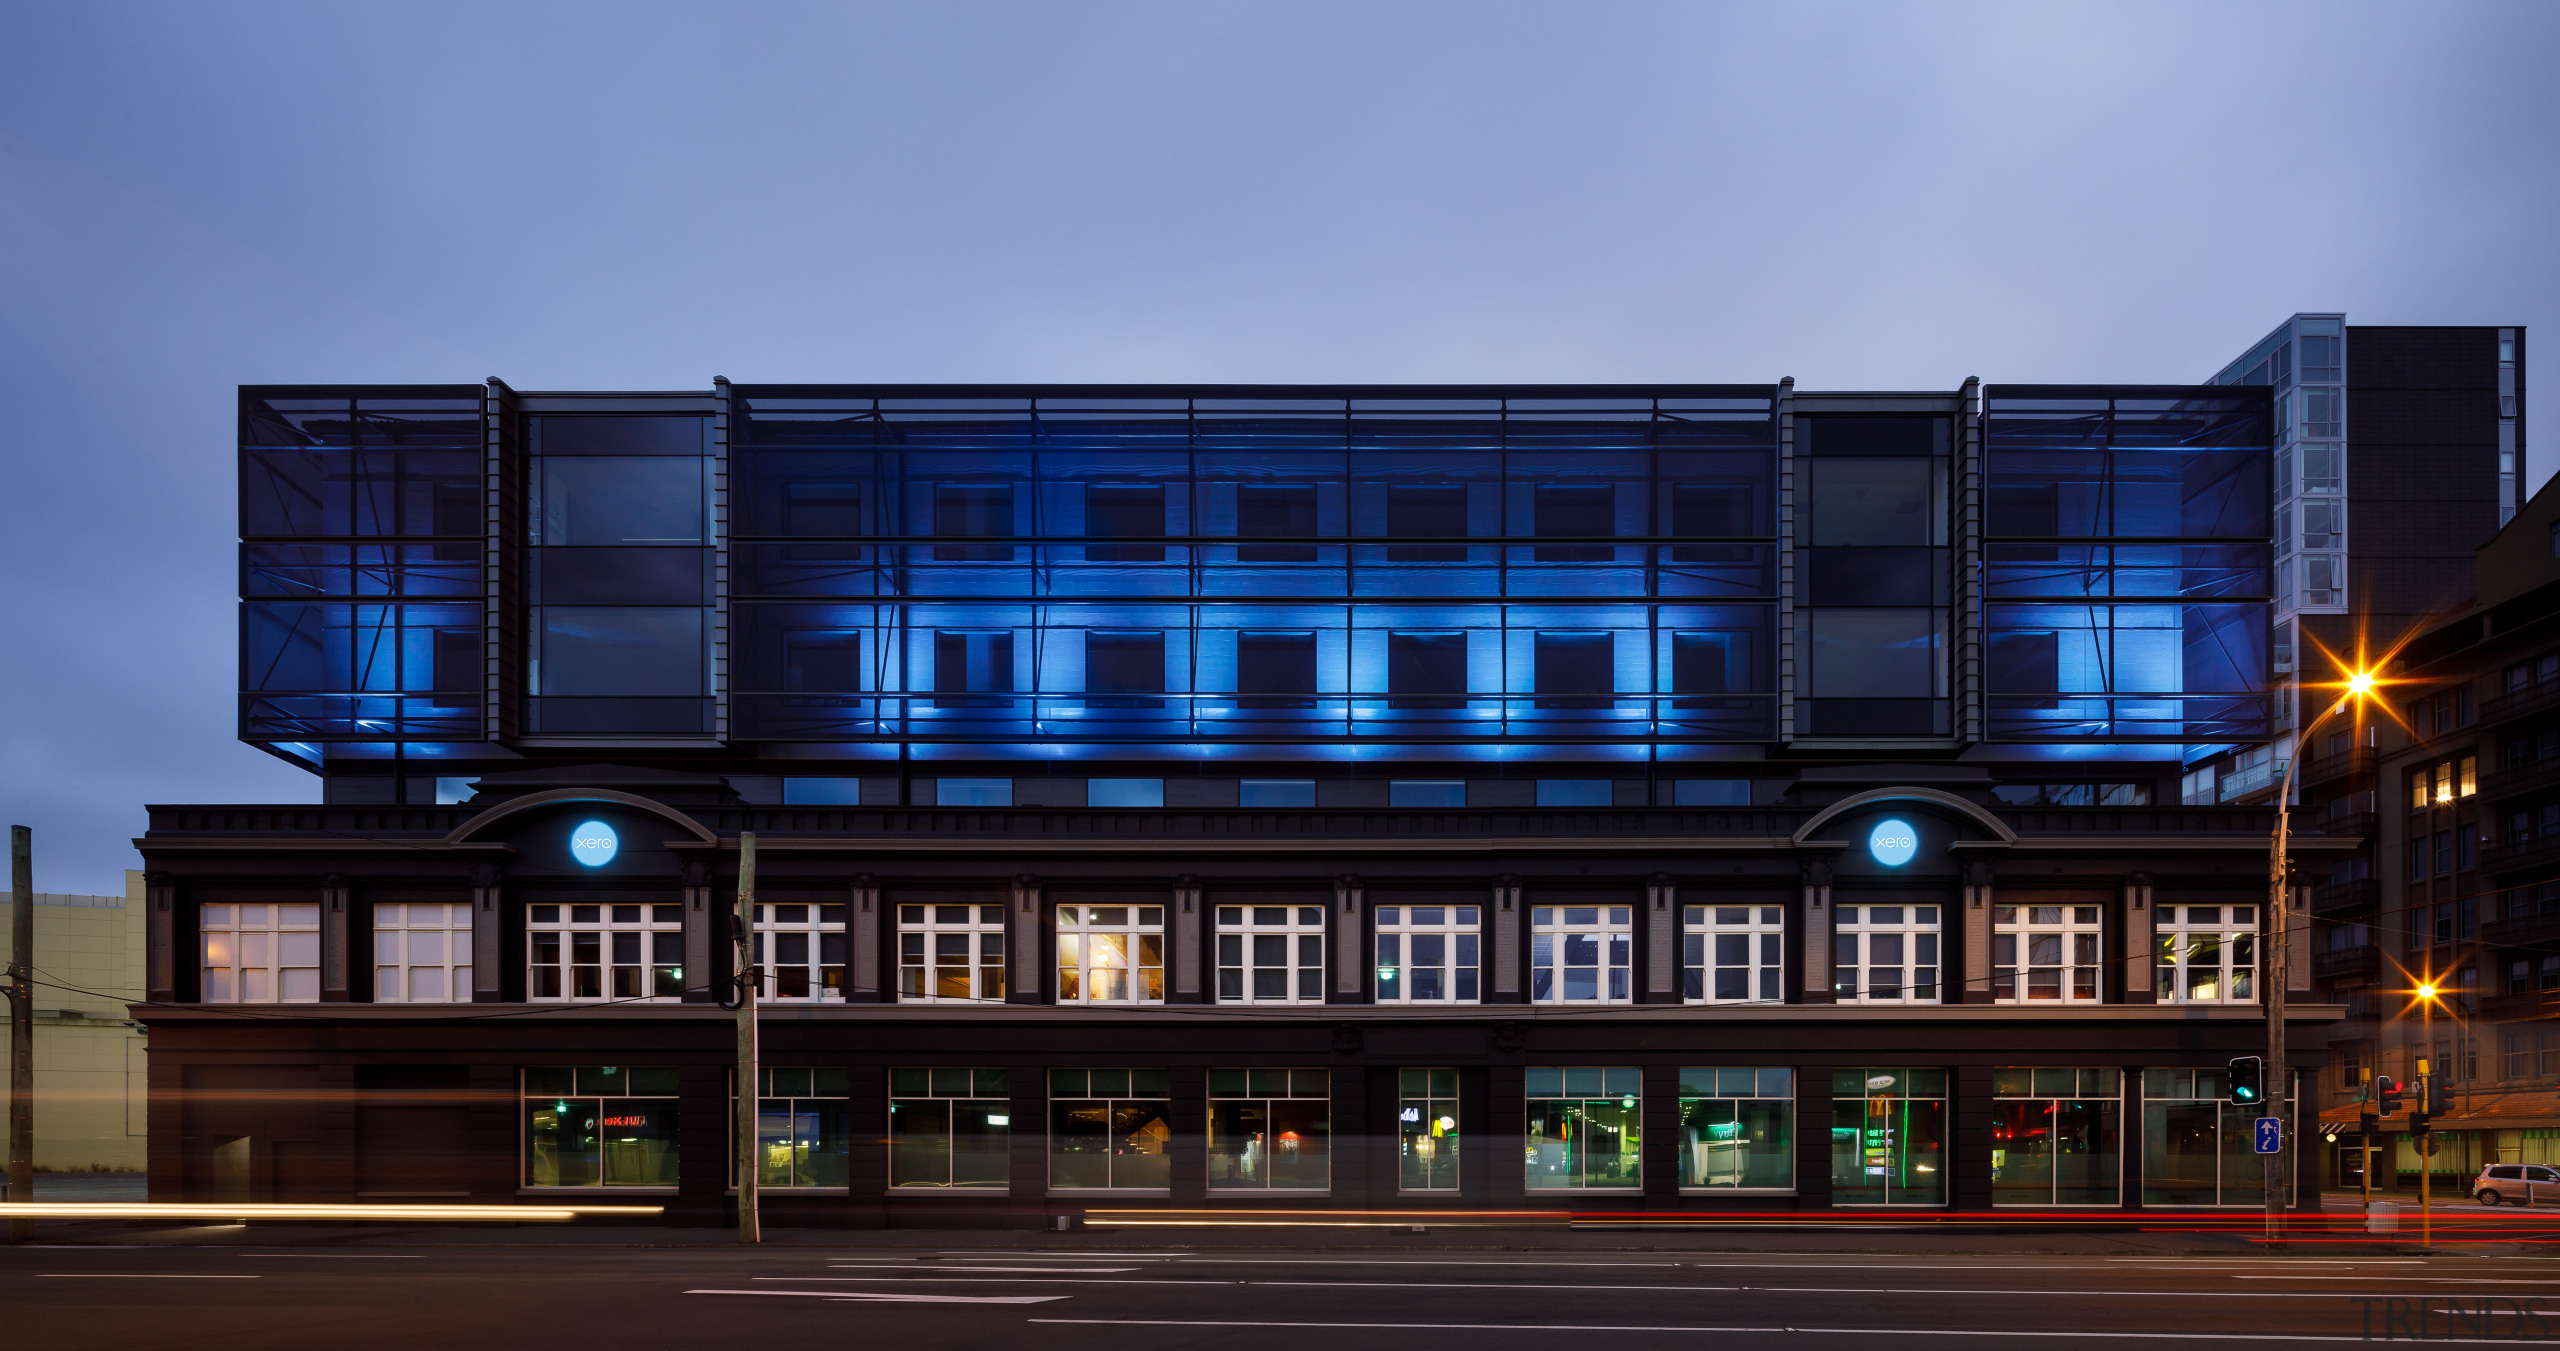 By night, the upper level facade of Xero's architecture, building, city, commercial building, corporate headquarters, evening, facade, headquarters, metropolitan area, mixed-use, night, sky, black, teal, blue